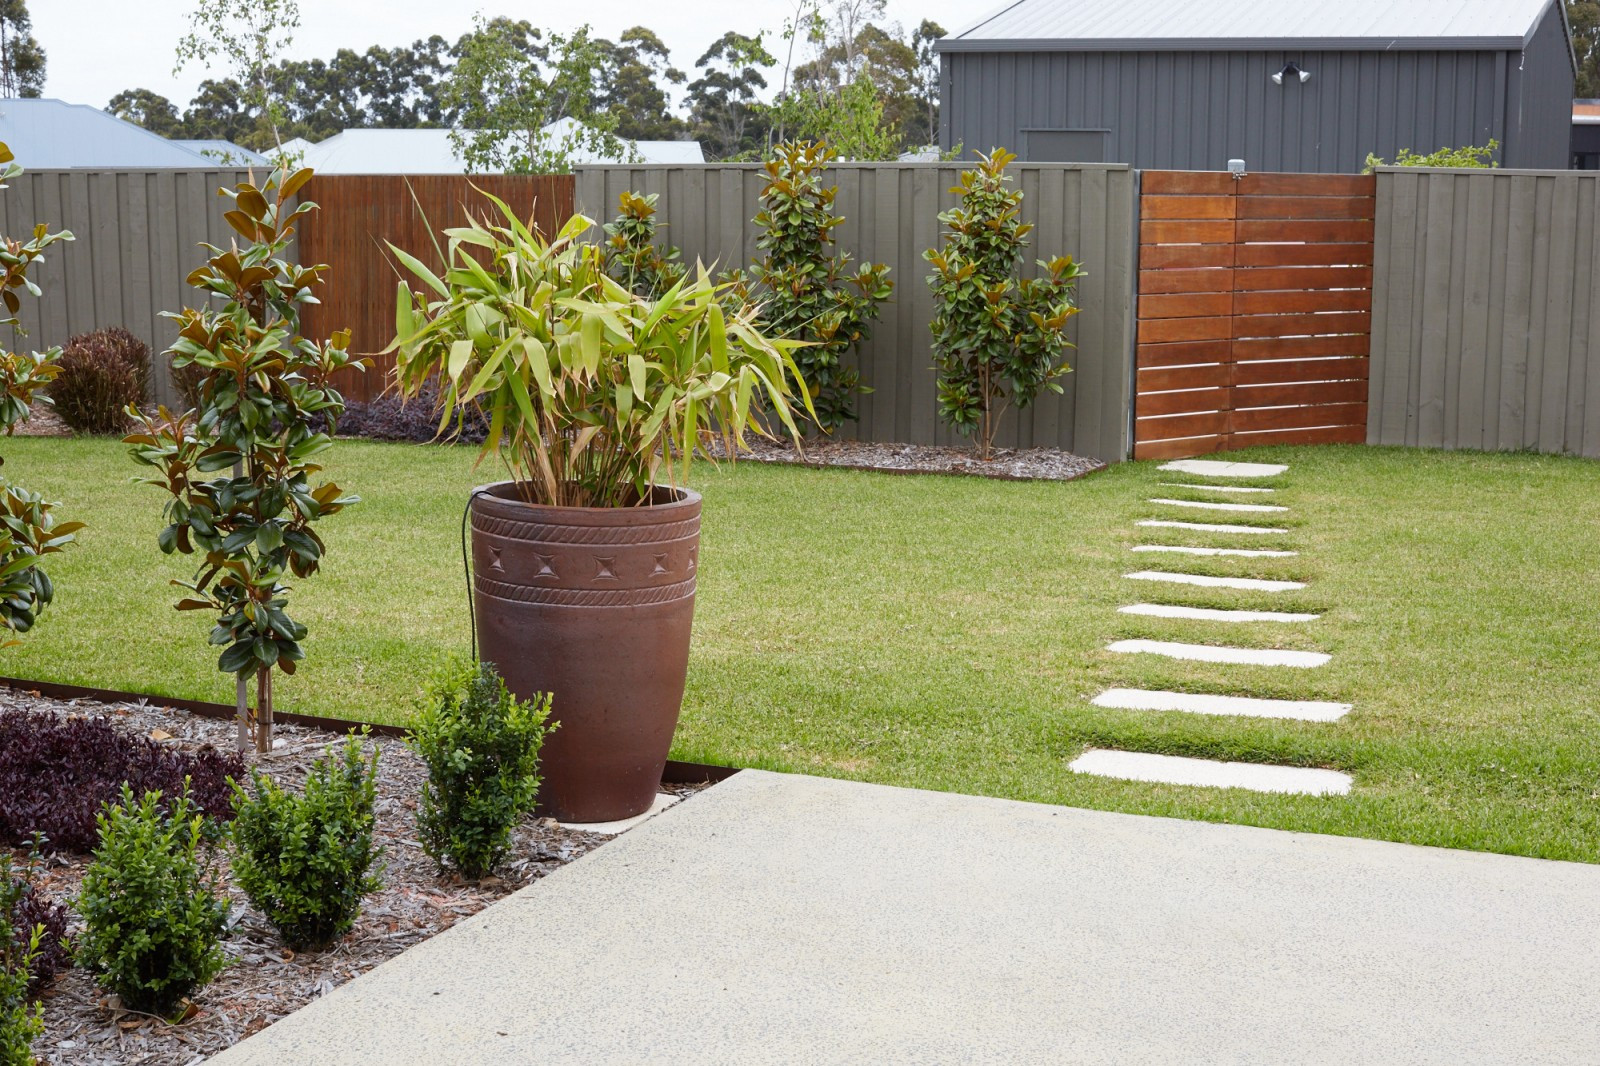 Best ideas about Backyard Creations Website . Save or Pin Ashton Street Margaret River Backyard Creations Now.